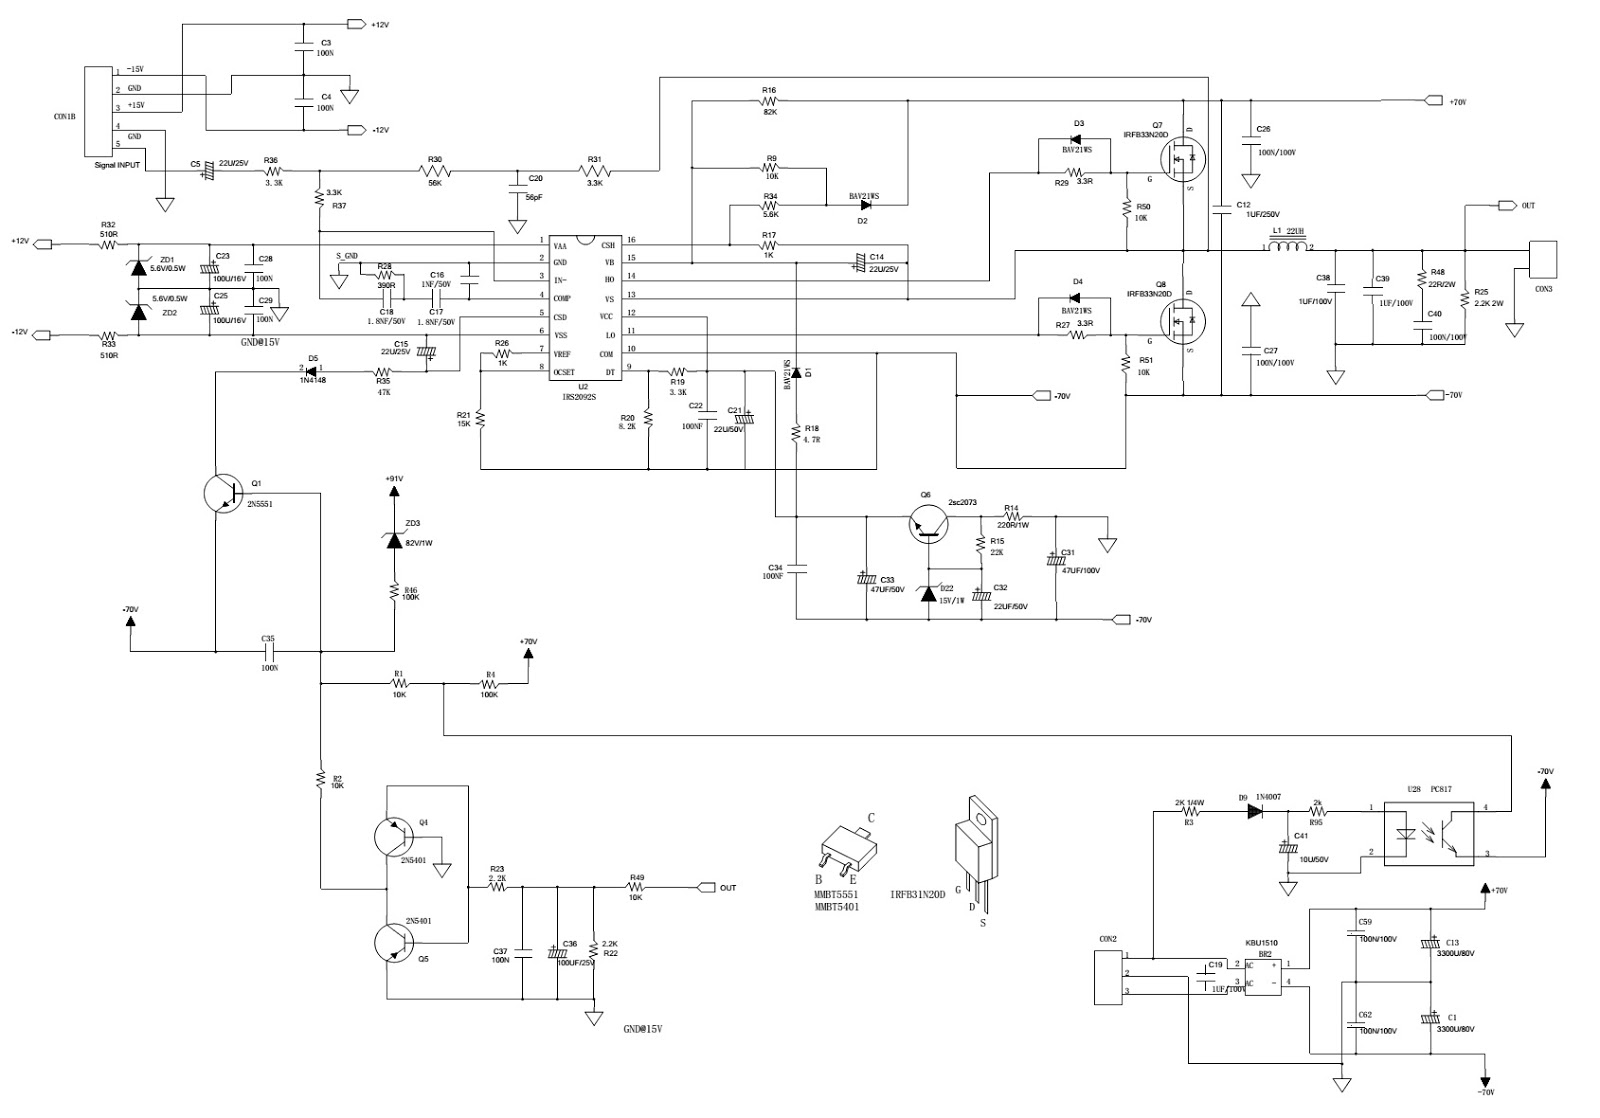 Schematic Diagram Of Class D Amplifier Max98304 Circuit Wiring File Archive Tourcab 715d Amp 700w And Preamplifier